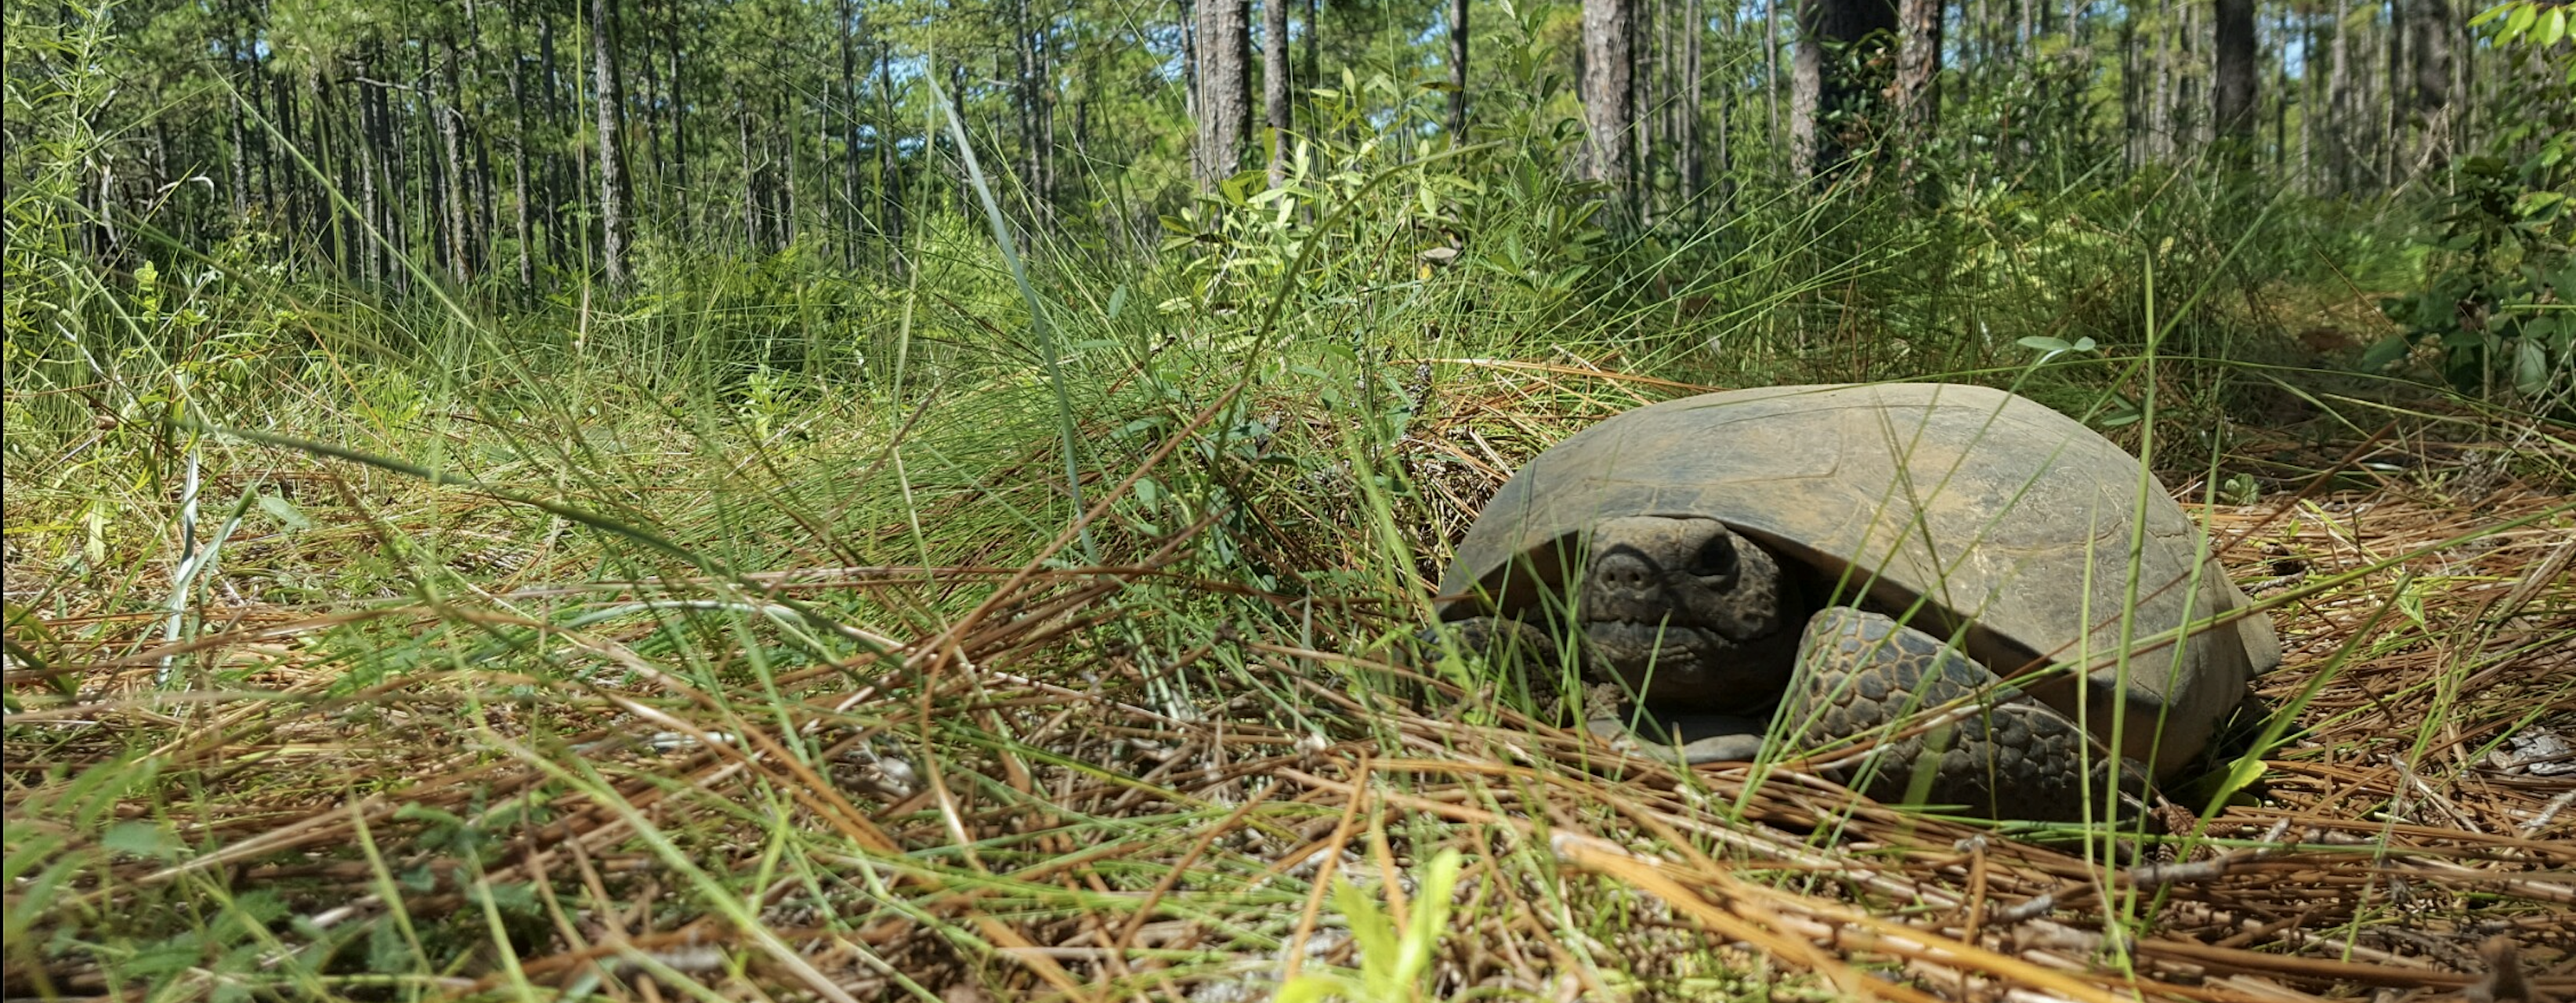 With wise eyes and scaly, shovel-like front legs, the Gopher tortoise digs burrows that provide shelter for approximately 350 other species.